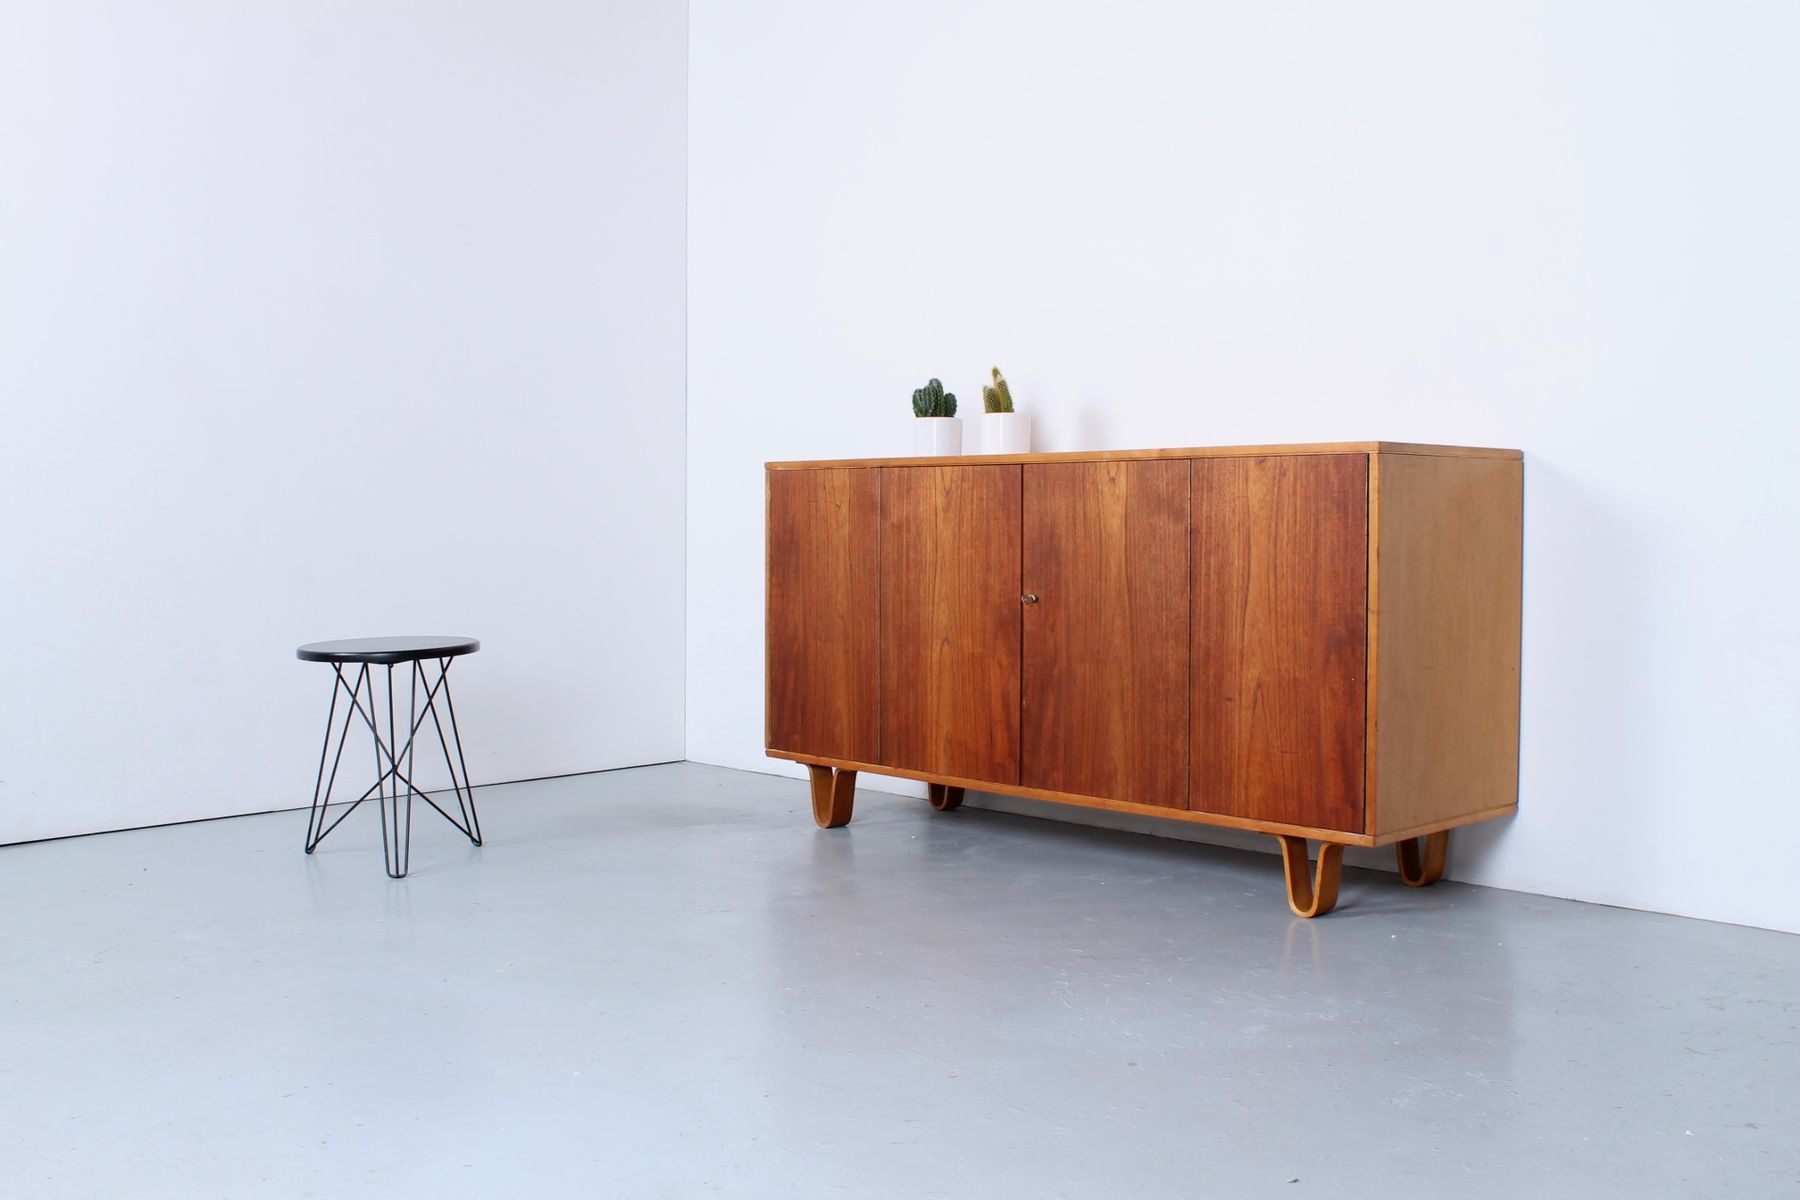 Two Tone Teak And Birch Plywood Cabinet By Cees Braakman For Pastoe, 1950s